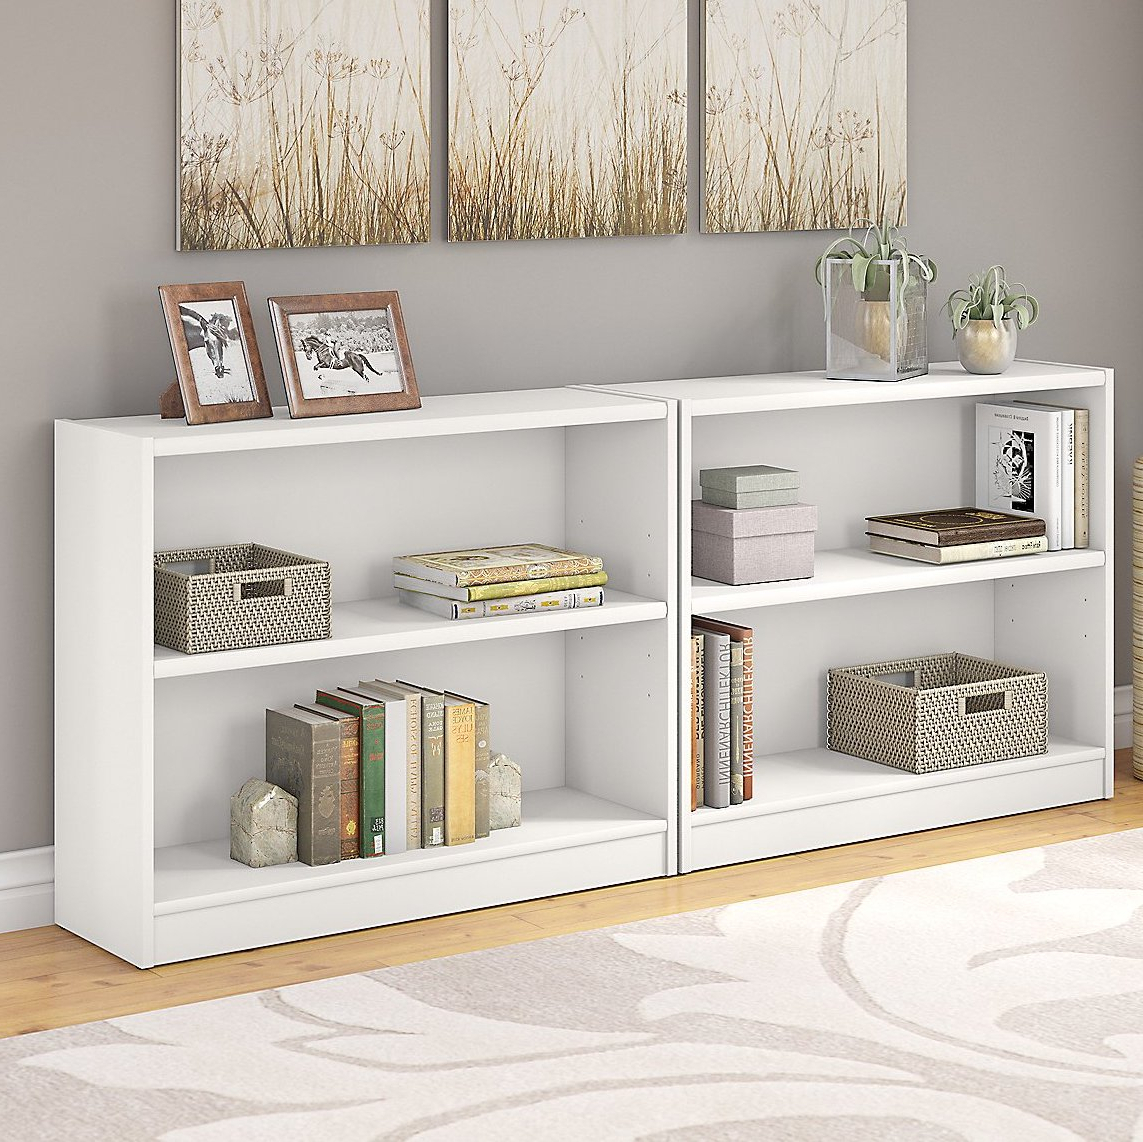 Most Current Crowley Standard Bookcases With Regard To Morrell Standard Bookcase (View 15 of 20)